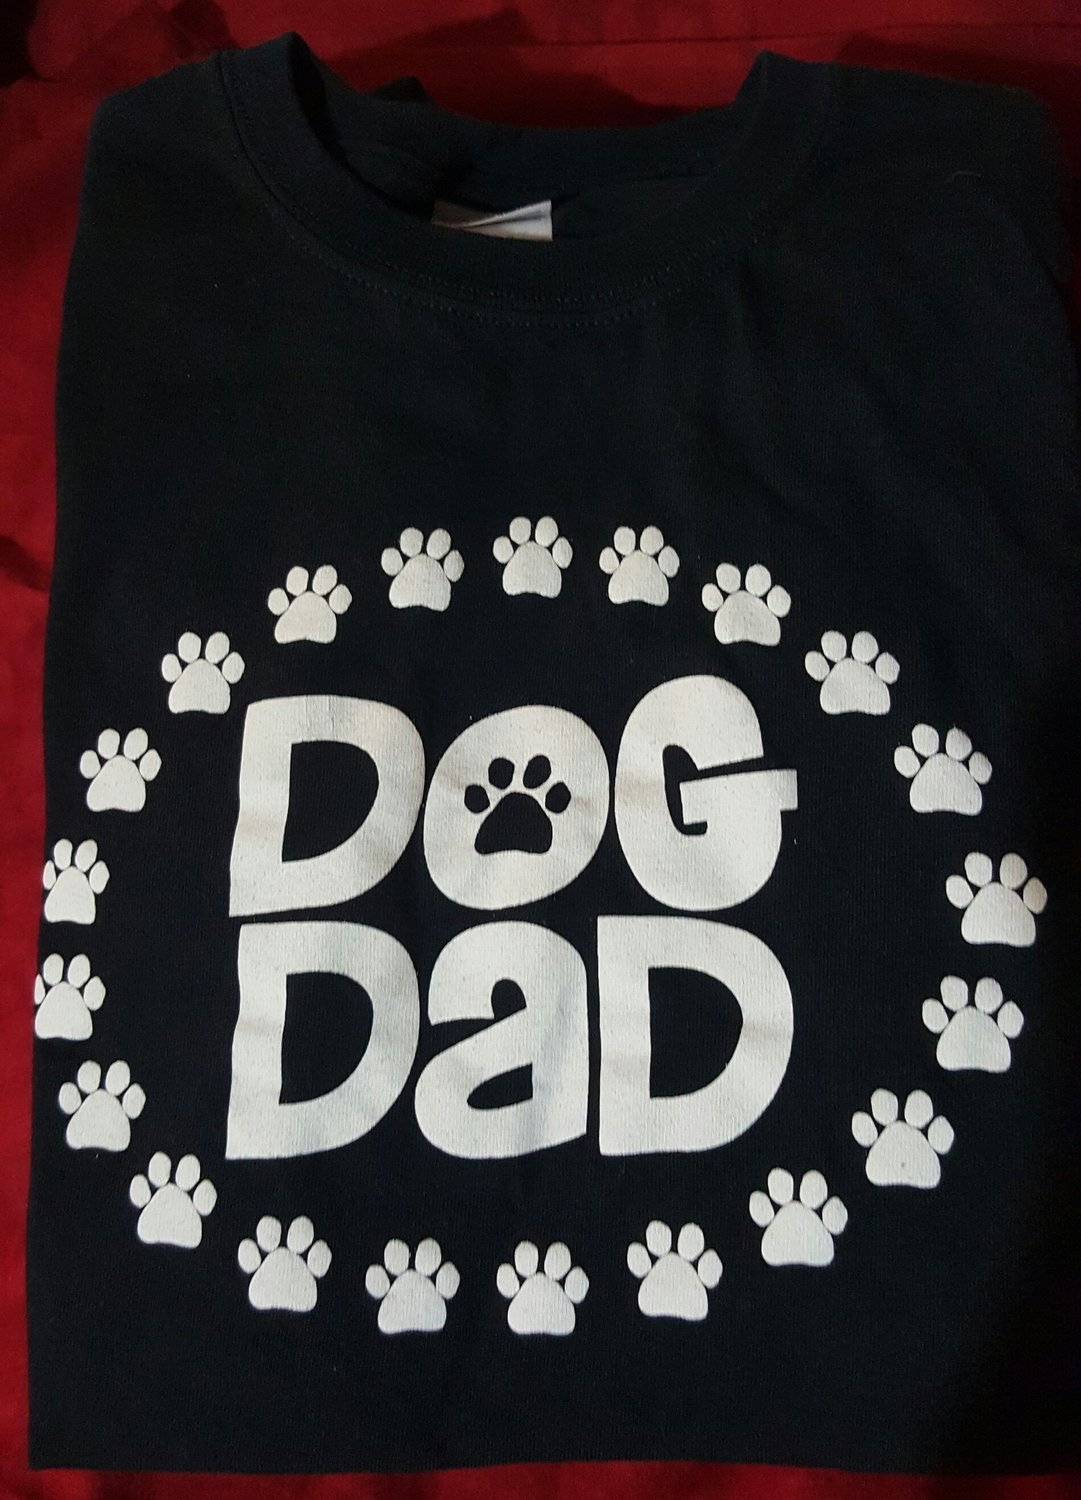 Dog Dad T-Shirt Black - Small Only (RPAL126)